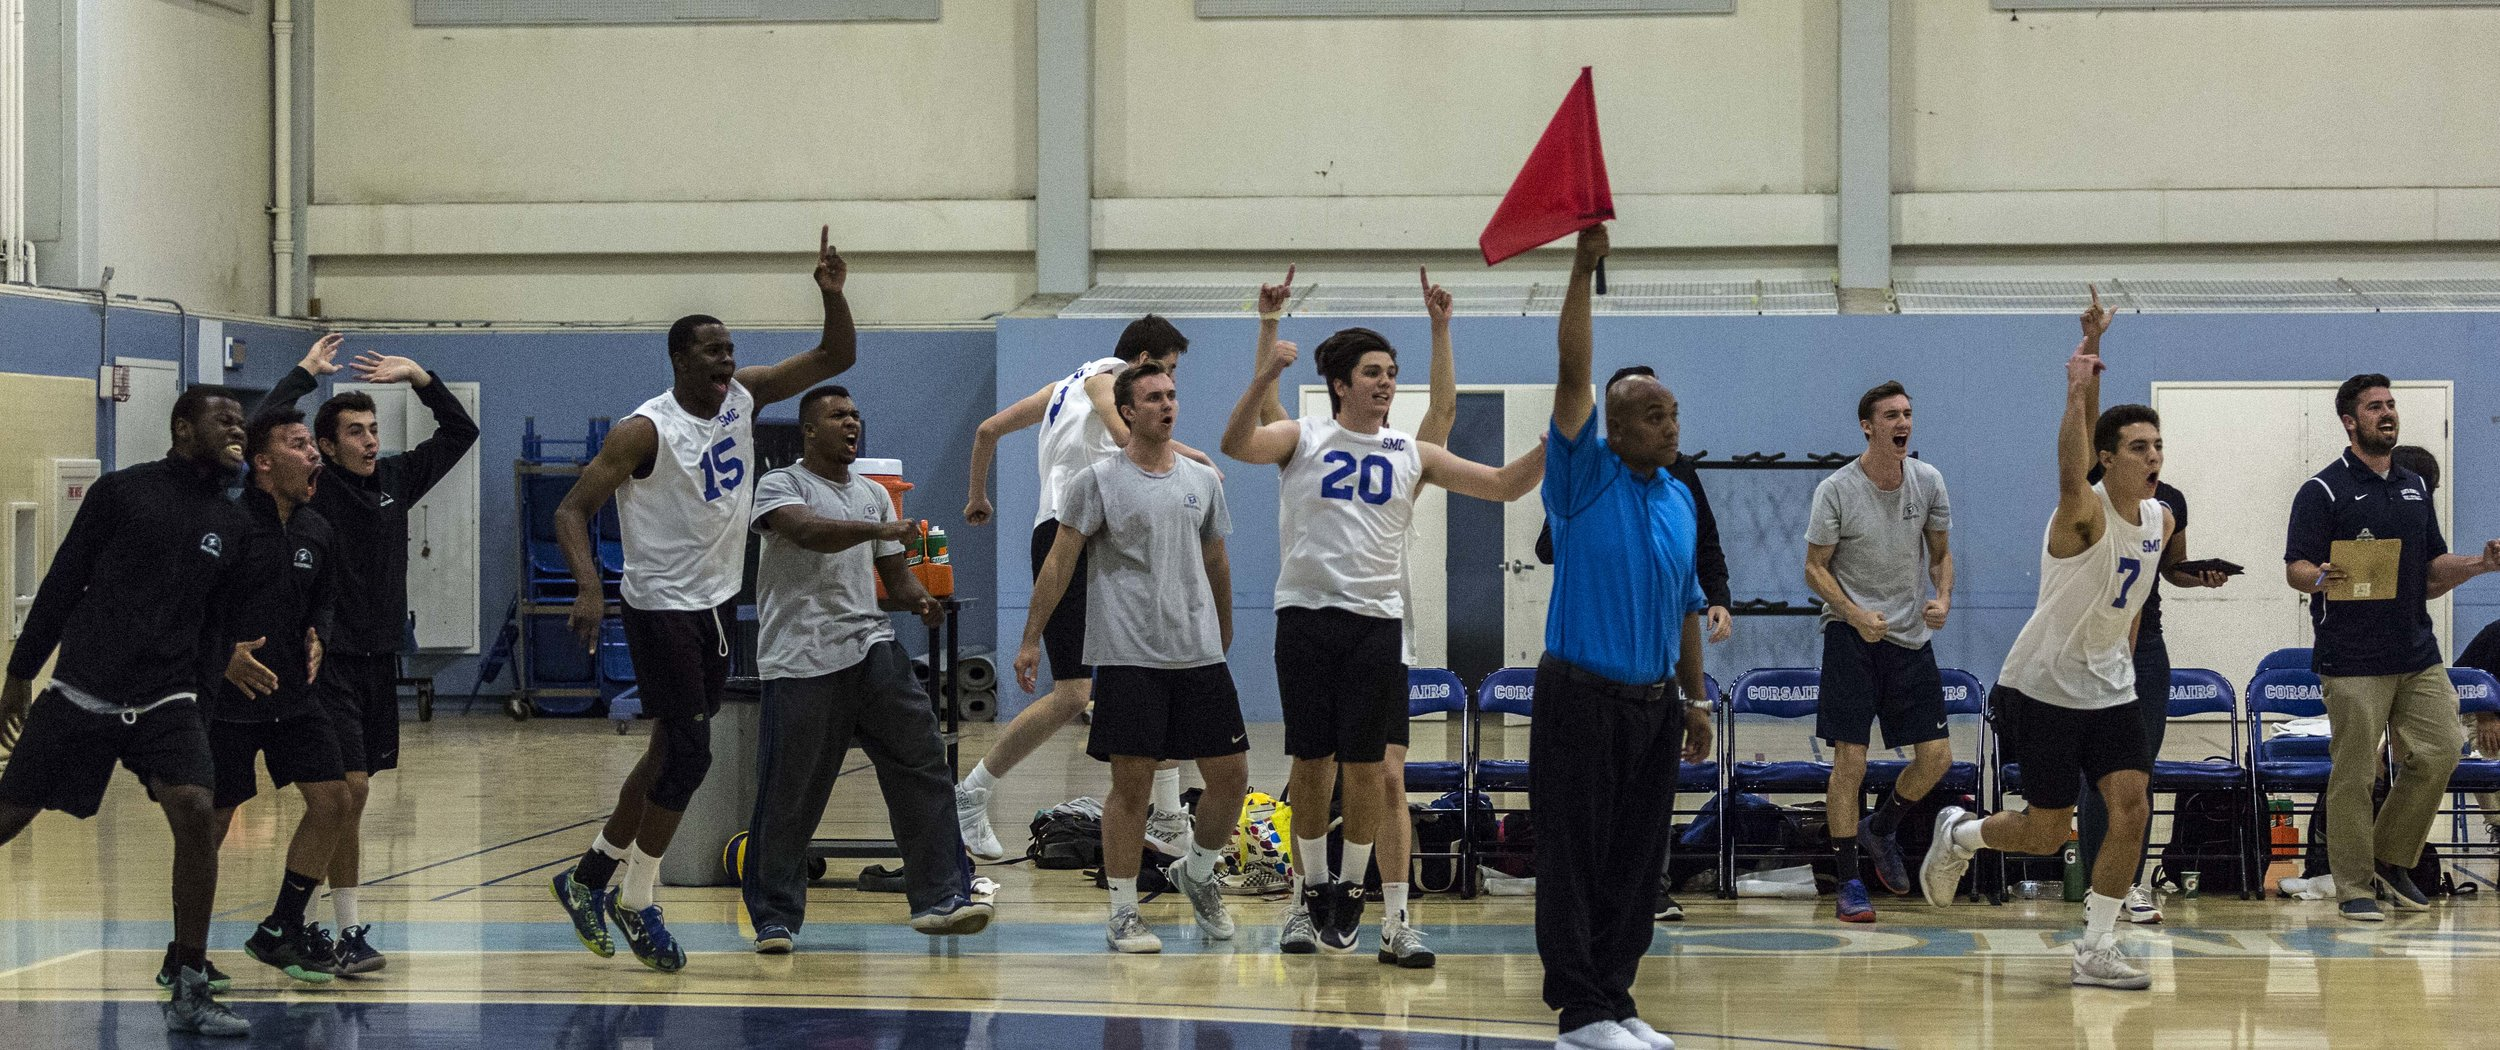 The Santa Monica Corsairs bench celebrates their match winning point (3-2) against The Pierce College Brahmas in the Santa Monica College gymnasium in Santa Monica Calif., on Friday, April 21 2017. The Corsairs however would go on to win the game 3-2, which would allow the Corsairs to advance to the second round of the CCCAA playoffs. (Corsair Photo: Matthew Martin)